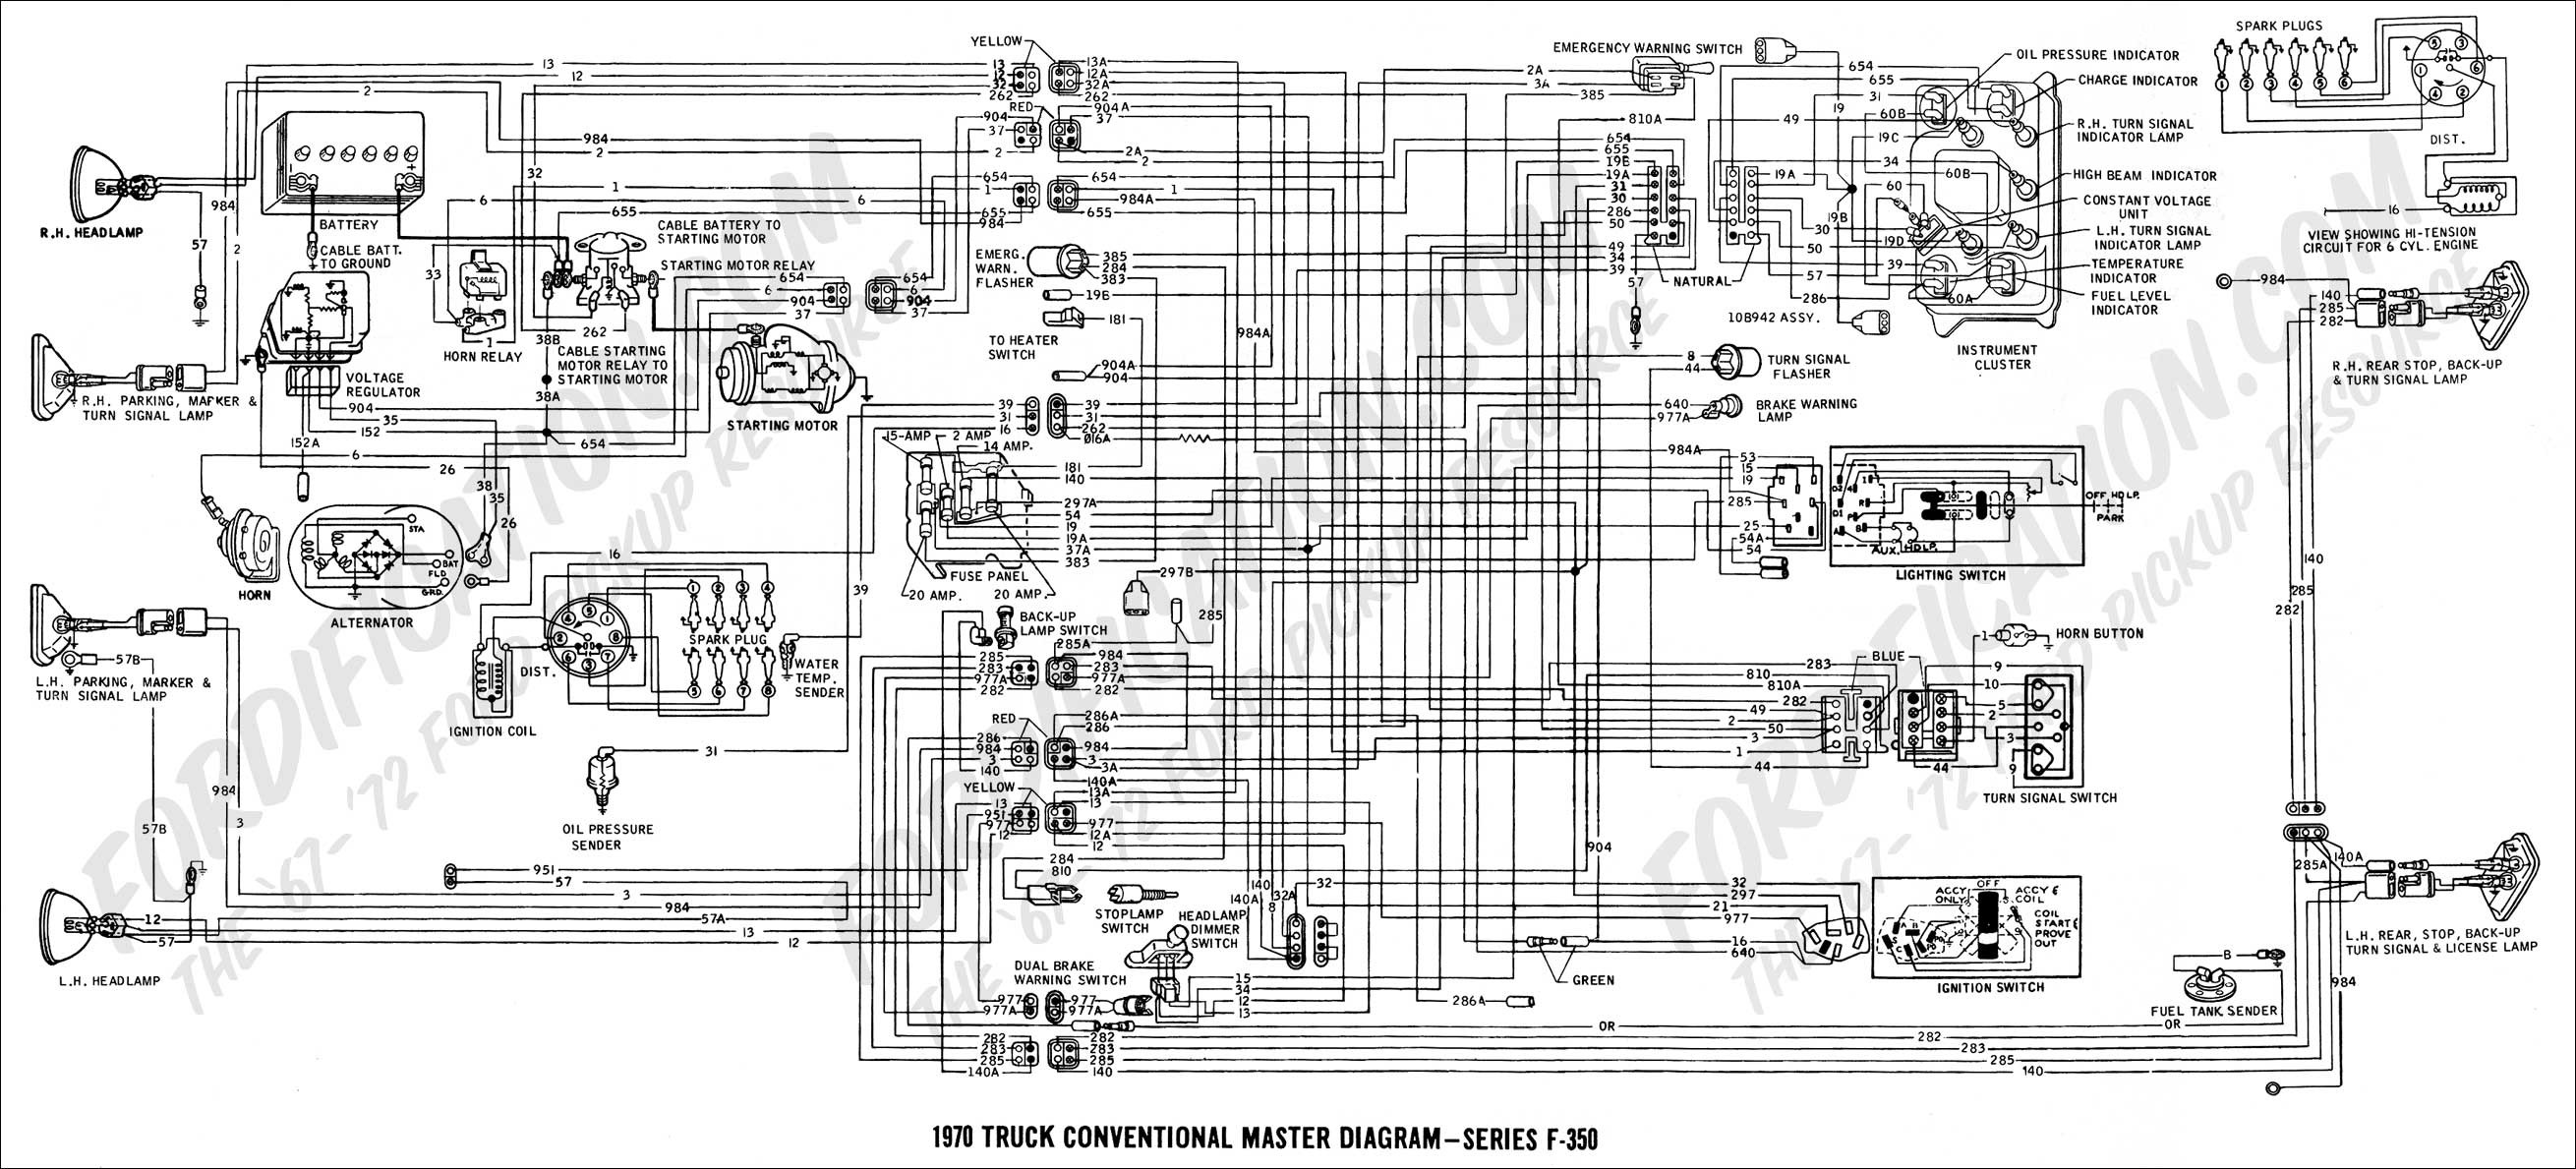 1990 Mustang Wiring Diagram Diagram as Well ford F 350 Wiring Diagram In Addition ford Headlight Of 1990 Mustang Wiring Diagram